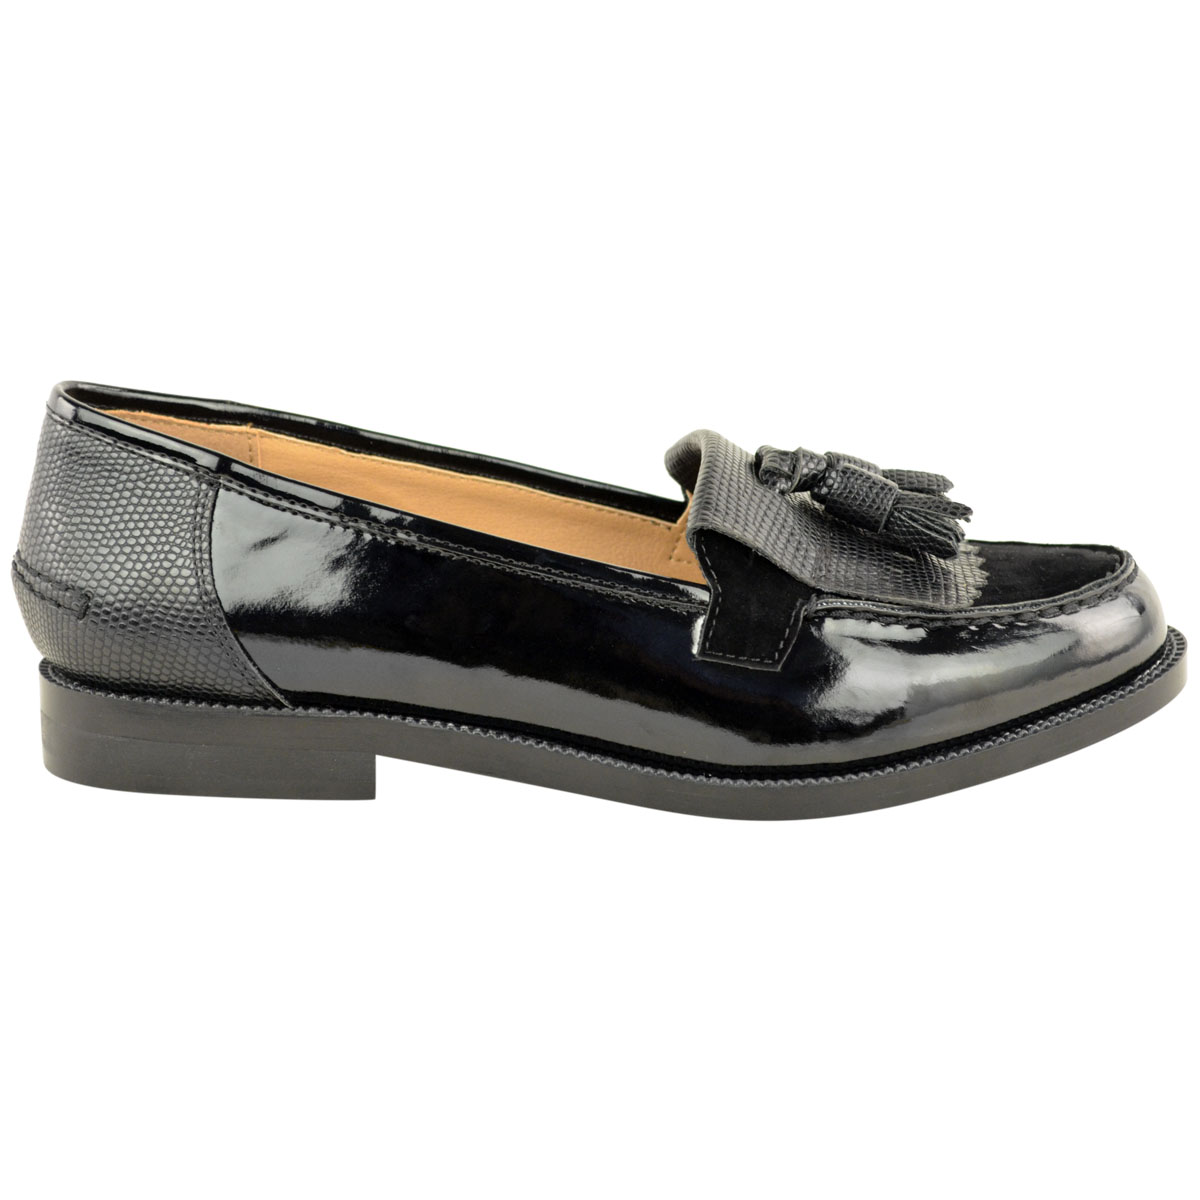 Womens-Ladies-Loafers-Brogues-Pumps-Casual-School-Office-Comfy-Work-Flats-Size thumbnail 39